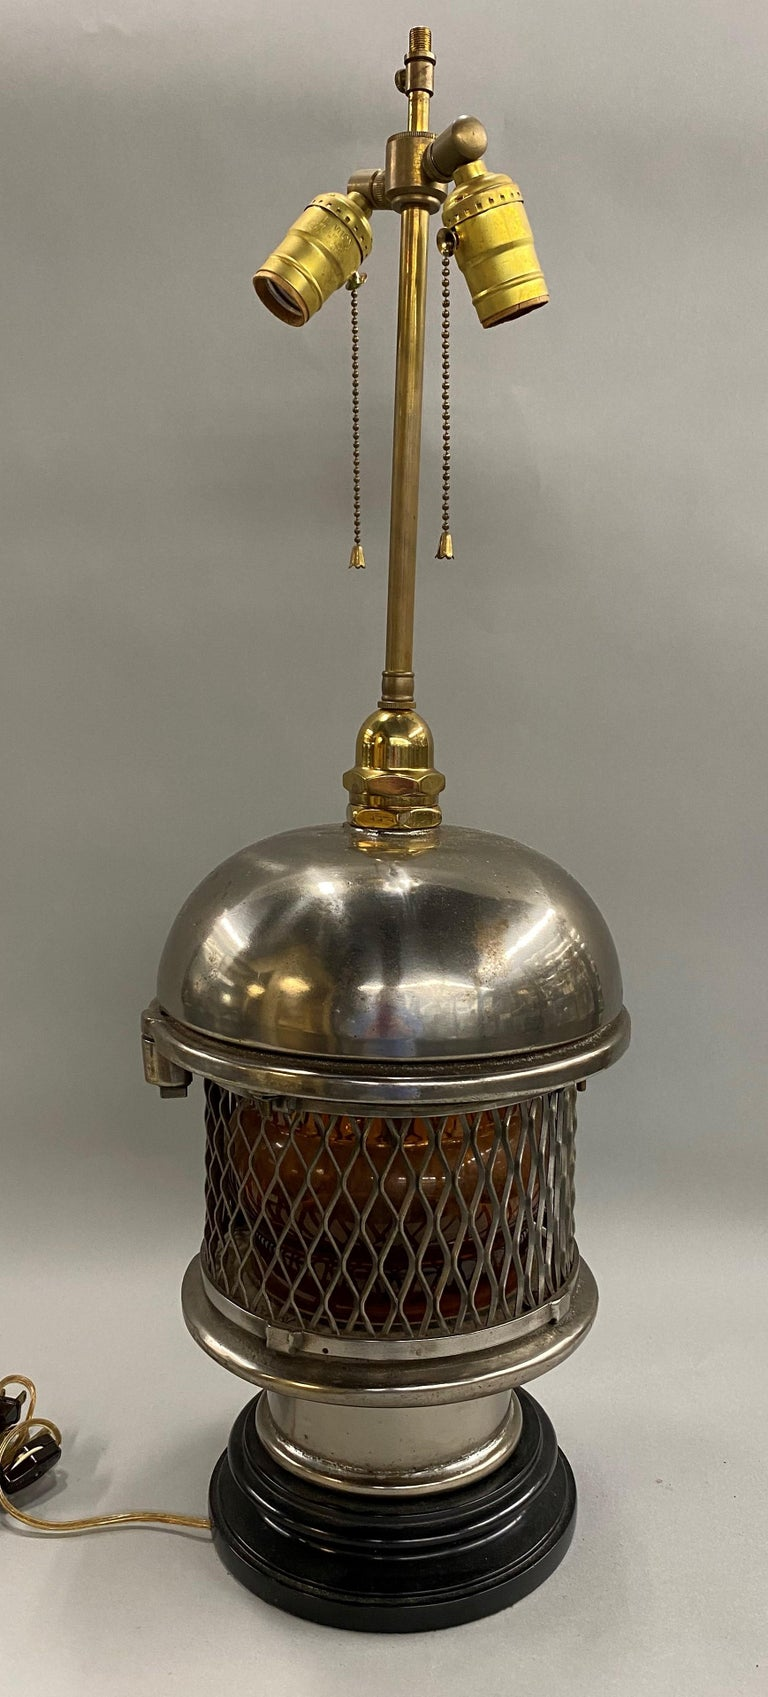 20th Century Chrome Top Nautical Ship's Lantern Converted Table Lamp, circa 1930s For Sale